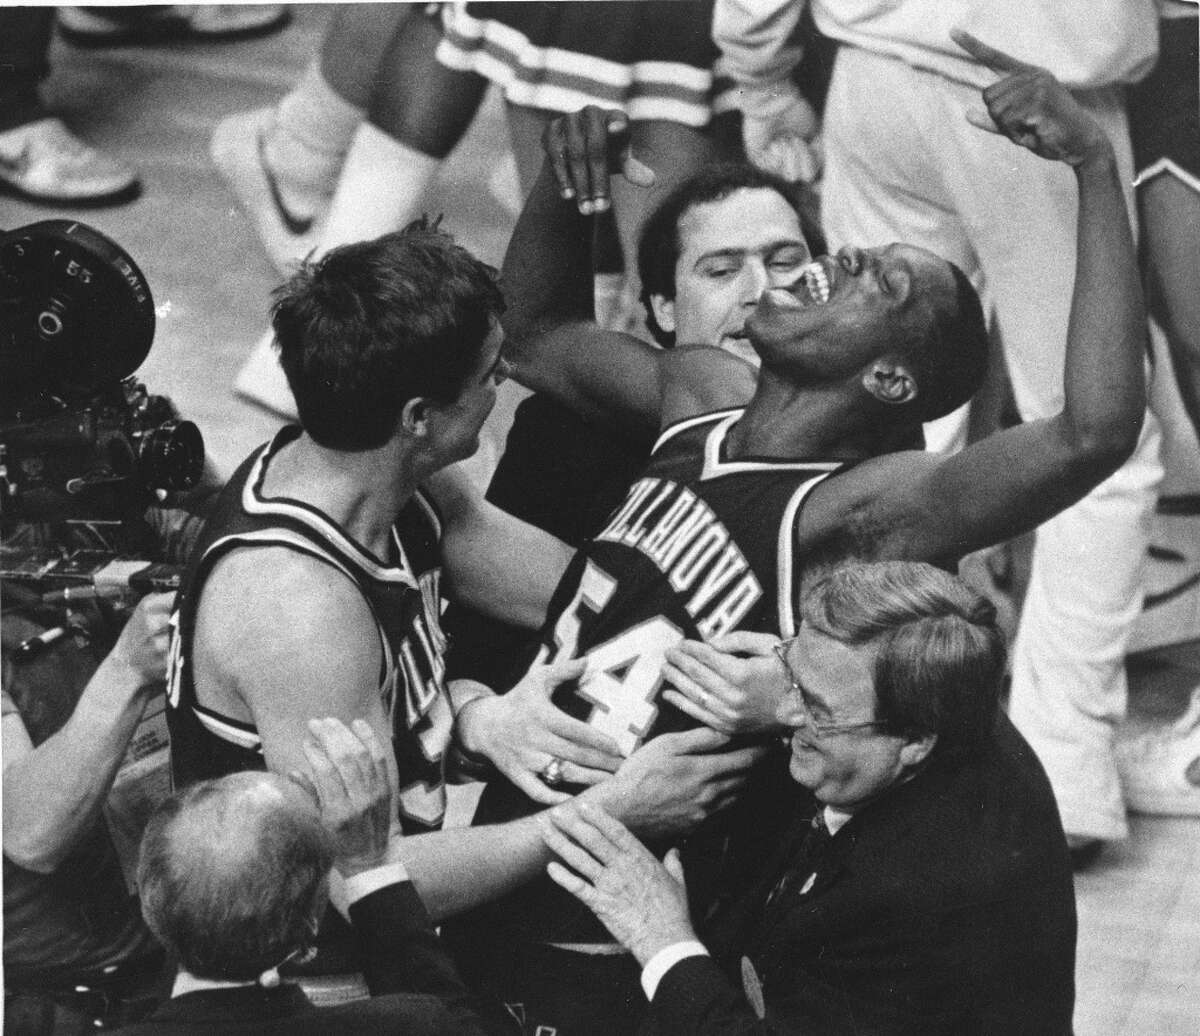 10. 1985 at Lexington, Ky.: Georgetown (1), St. John's (1), Memphis State (2), Villanova (8) This was a historic Final Four for many reasons. First, it's the only one to feature three teams from the same conference, as Memphis State was the outsider during the heyday of the Big East. Plus, the shocking ending - Villanova's 66-64 victory over defending national champion and top-ranked Georgetown - is considered one of the greatest upsets in sports history, although the Wildcats did play the Hoyas close in dropping both regular-season meetings. The Villanova/Georgetown final also was the last college basketball game played without a shot clock.